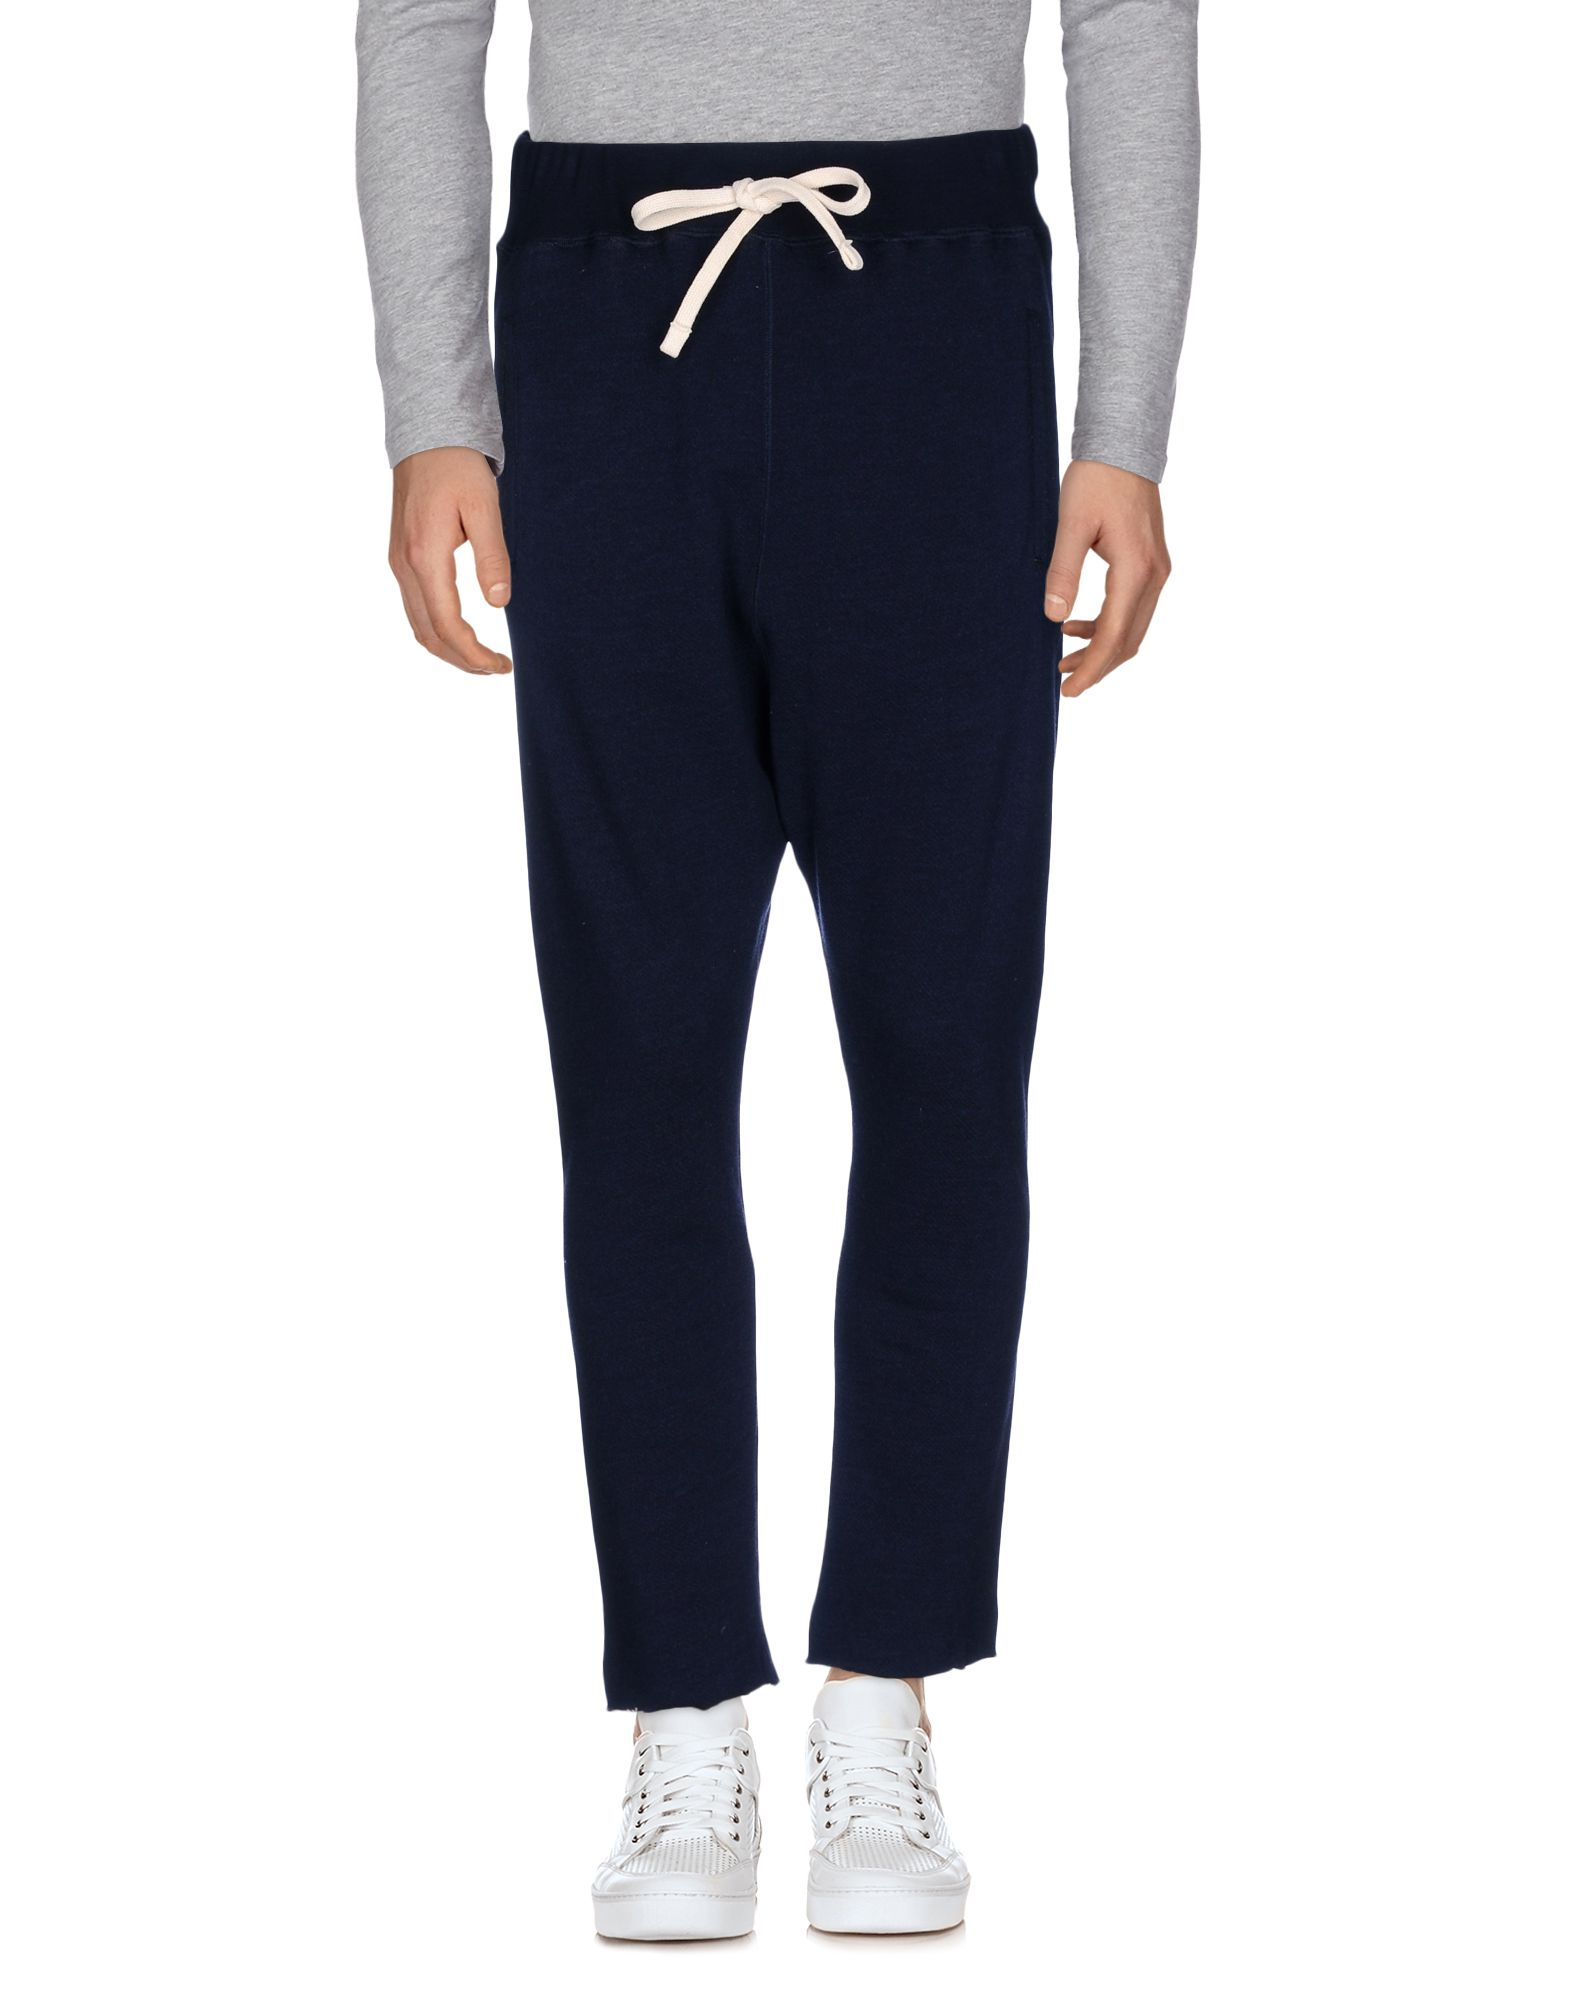 Pantalone Things On Earth Uomo - Acquista online su